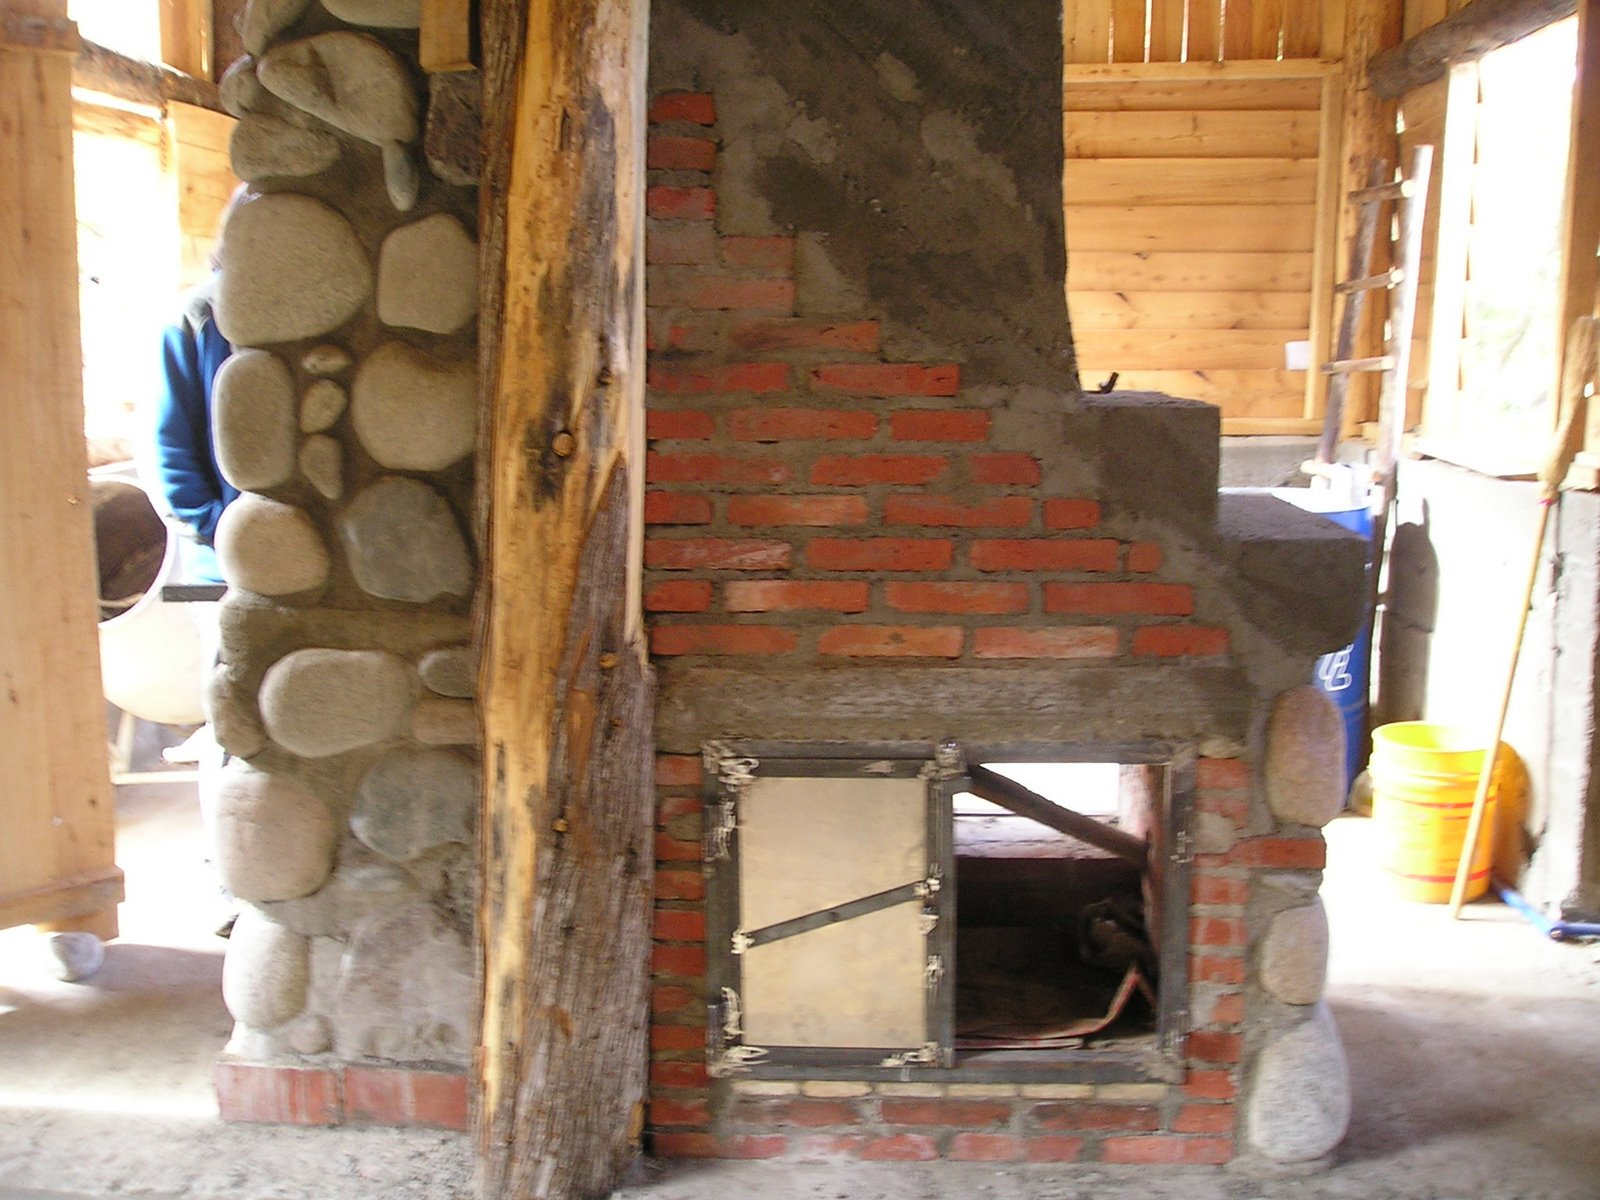 fireplace mass stove oven water heater and staircase all in